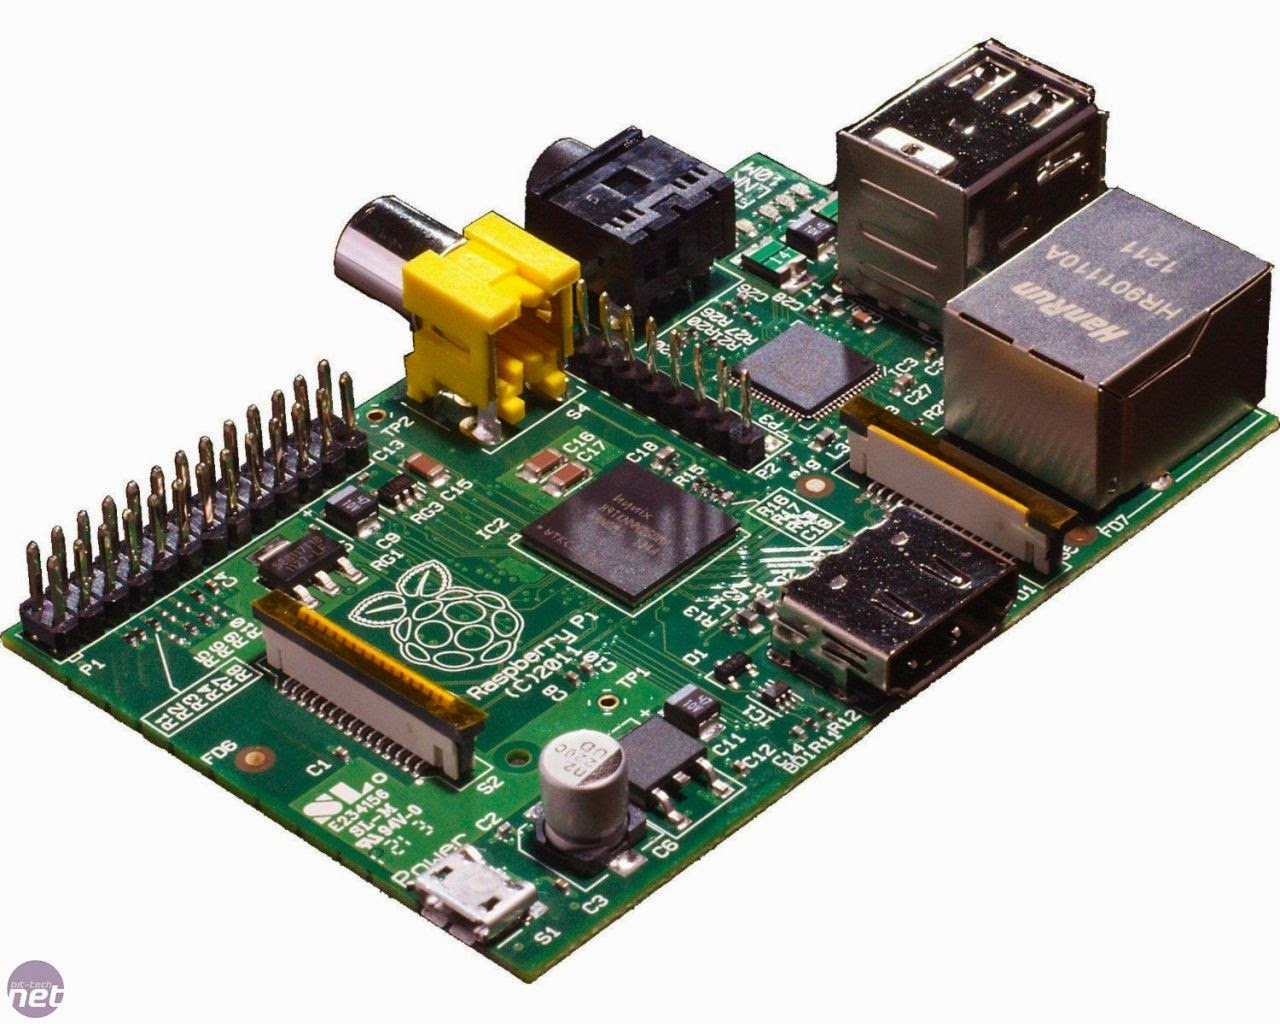 Stanko Petris Blog Raspberry Pi Weatherstation Wiringpi Bcm2708 What You Need